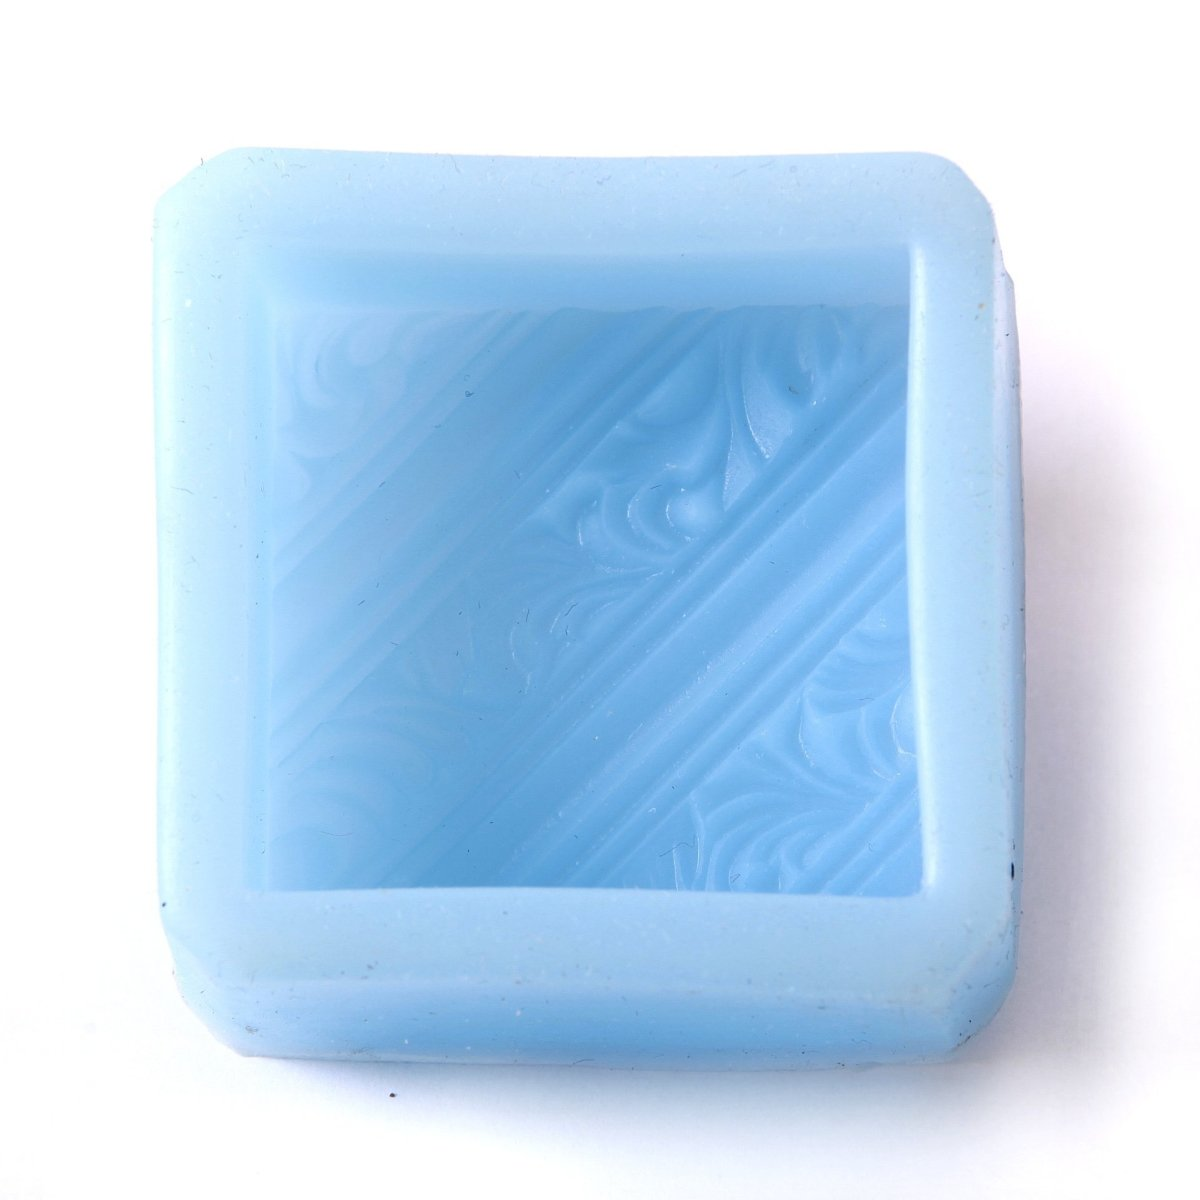 Diagonal Lines and Rococo Swirls Square Silicone Soap Mould R0134 - Mystic Moments UK